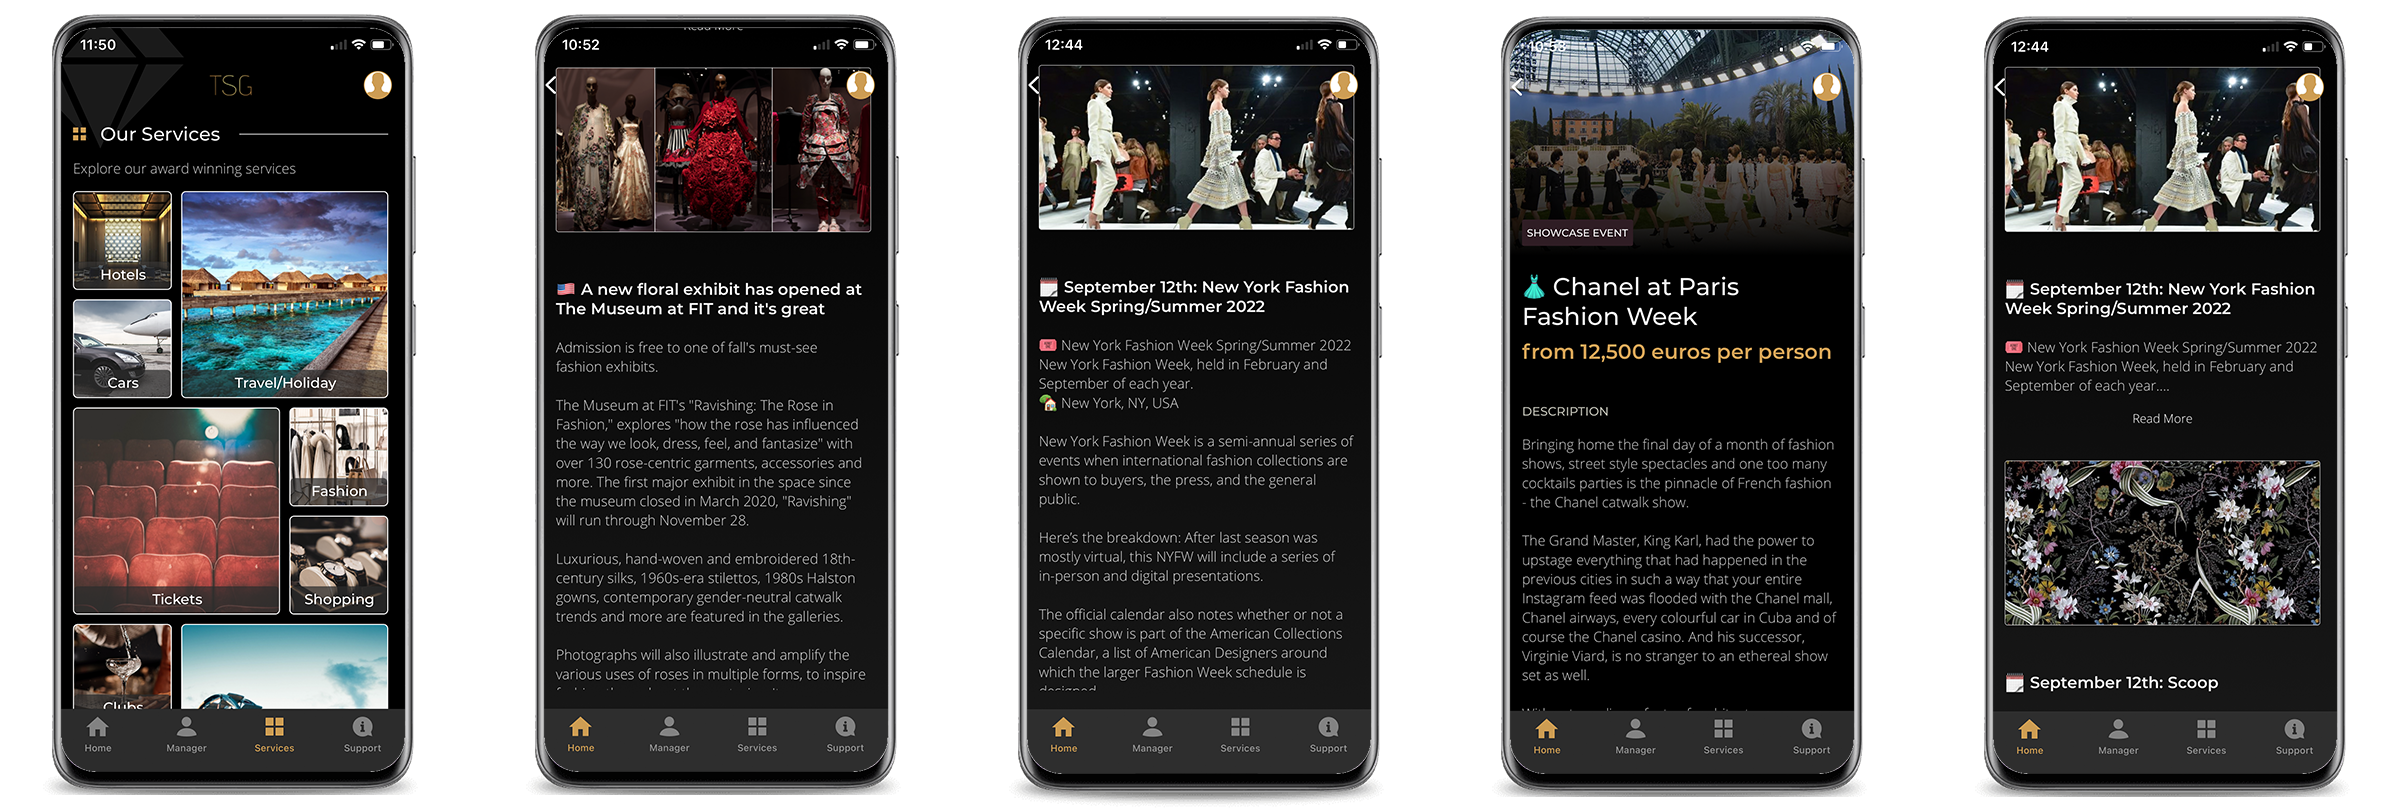 the latest british fashion awards news at the touch of a button with the sincura app